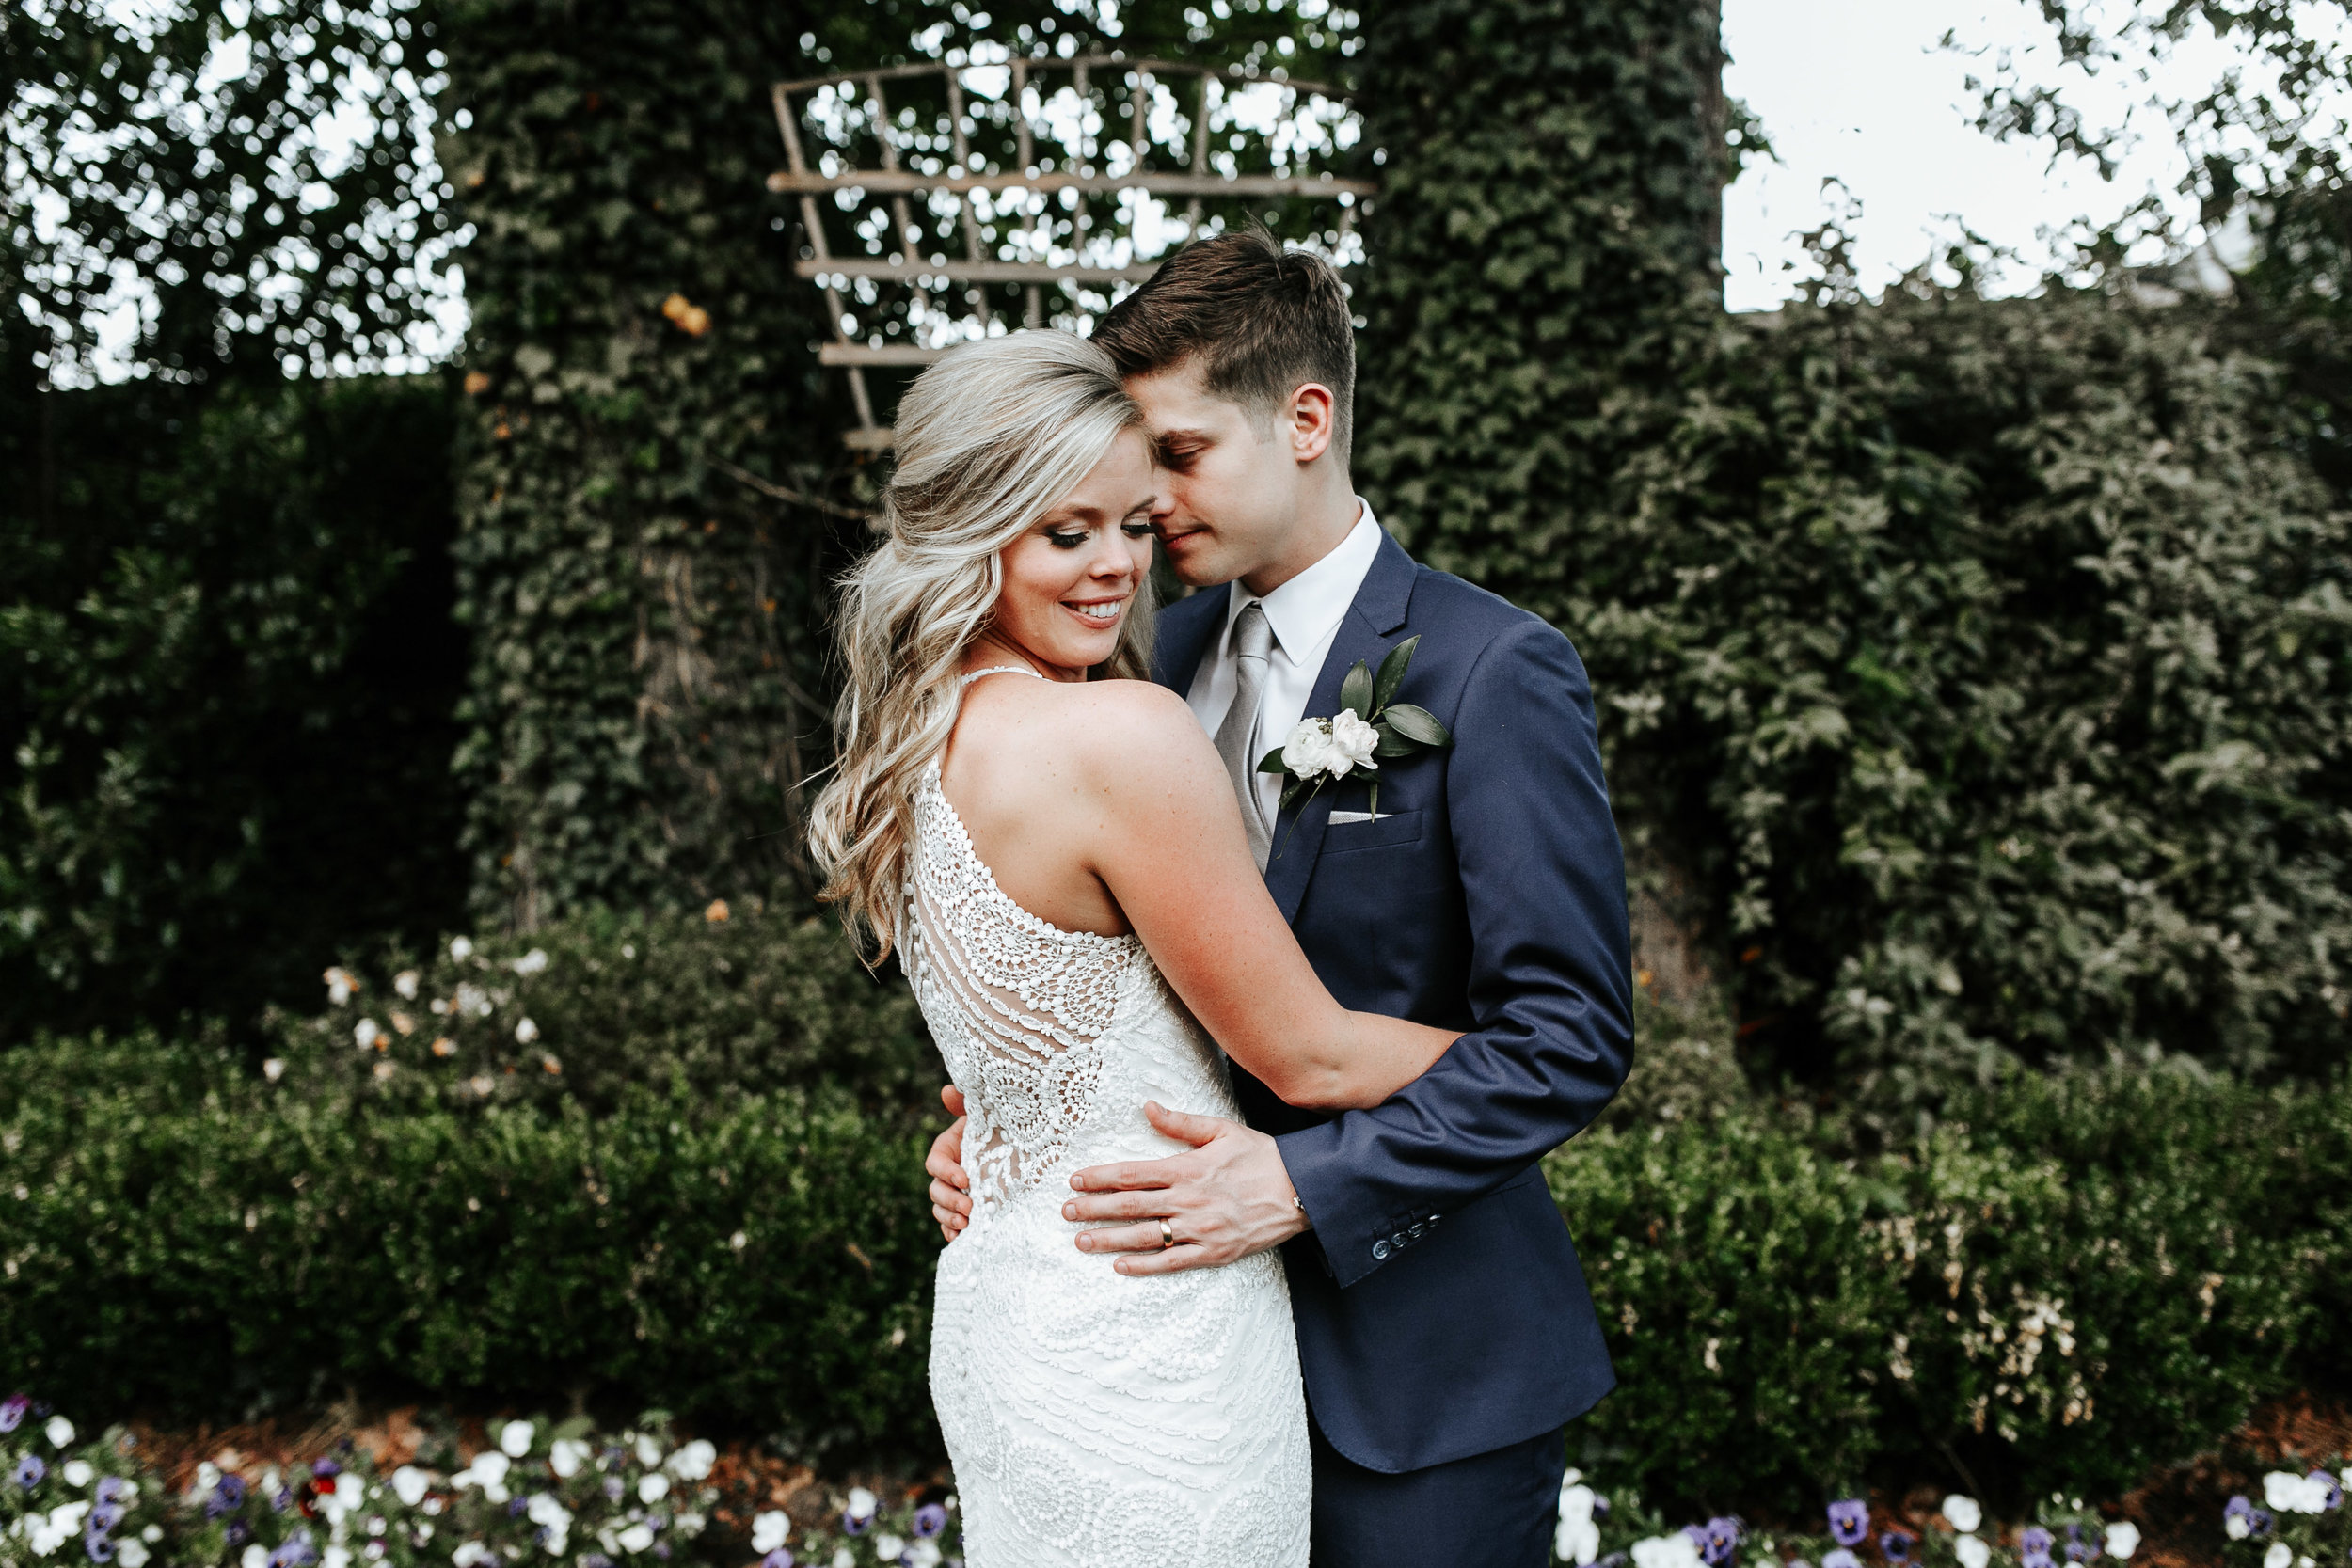 michellebrandonwedding-46.jpg